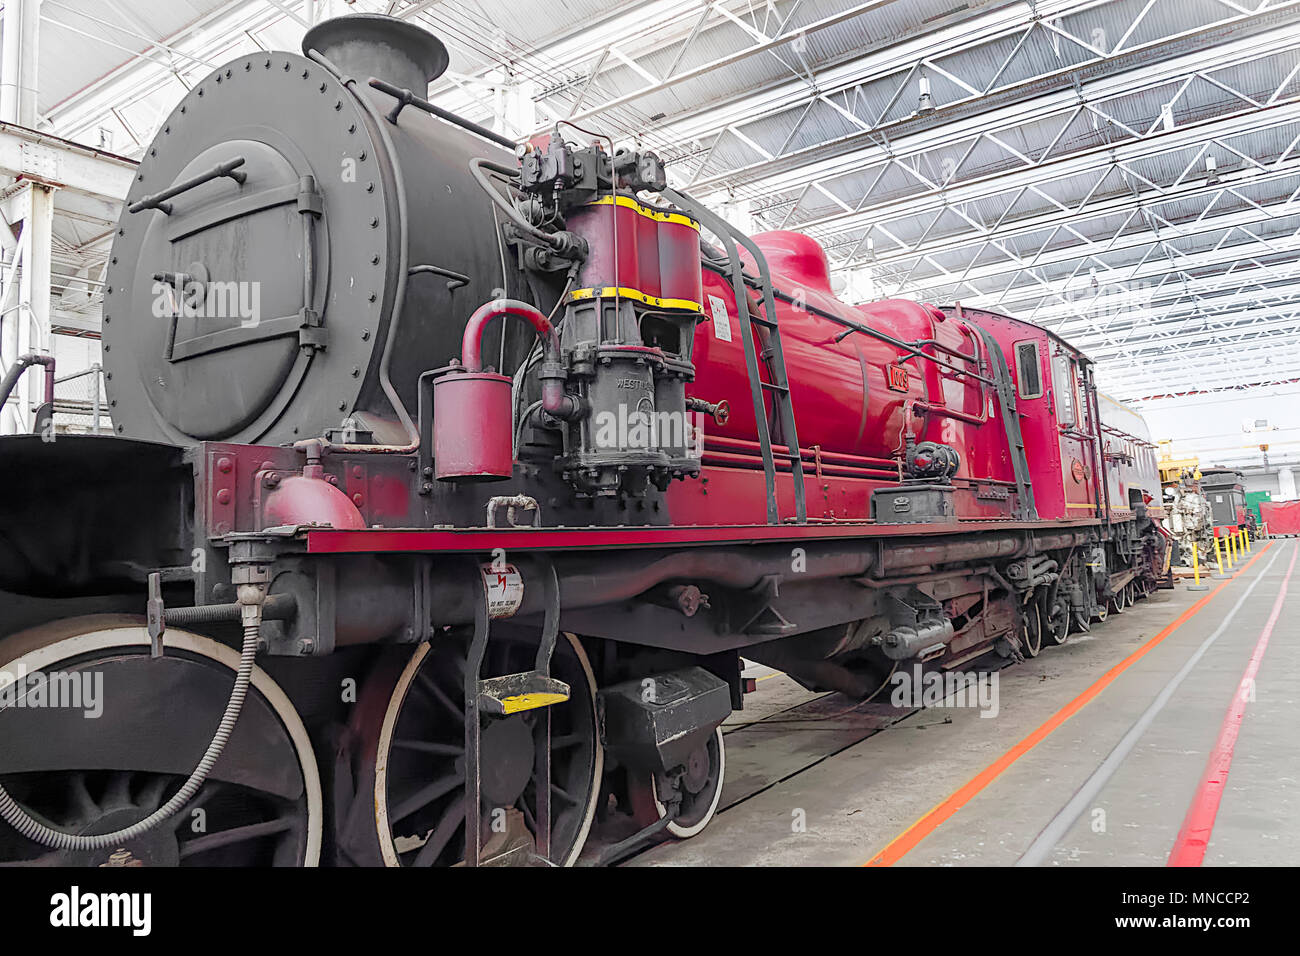 The railway workshops maintain many varieties of locomotives.  This steam engine is only one of many - Stock Image